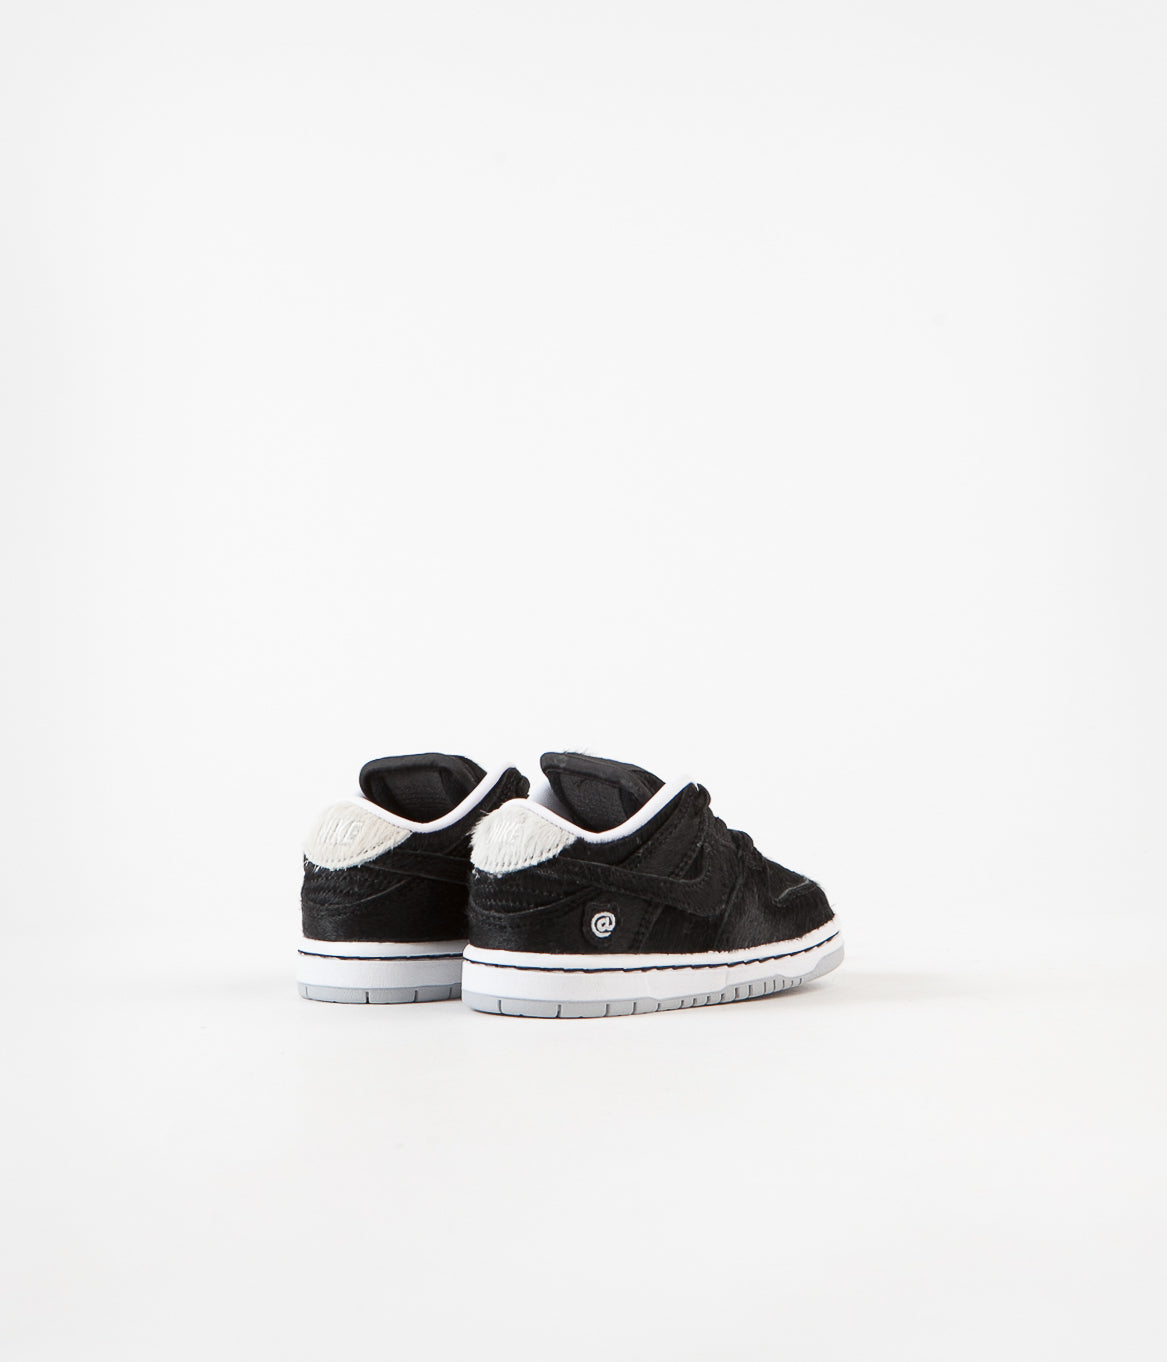 músculo Formación ingeniero  Nike SB Dunk Low Pro Medicom Toddler Shoes - Black / Black - White |  Releases.Flatspot